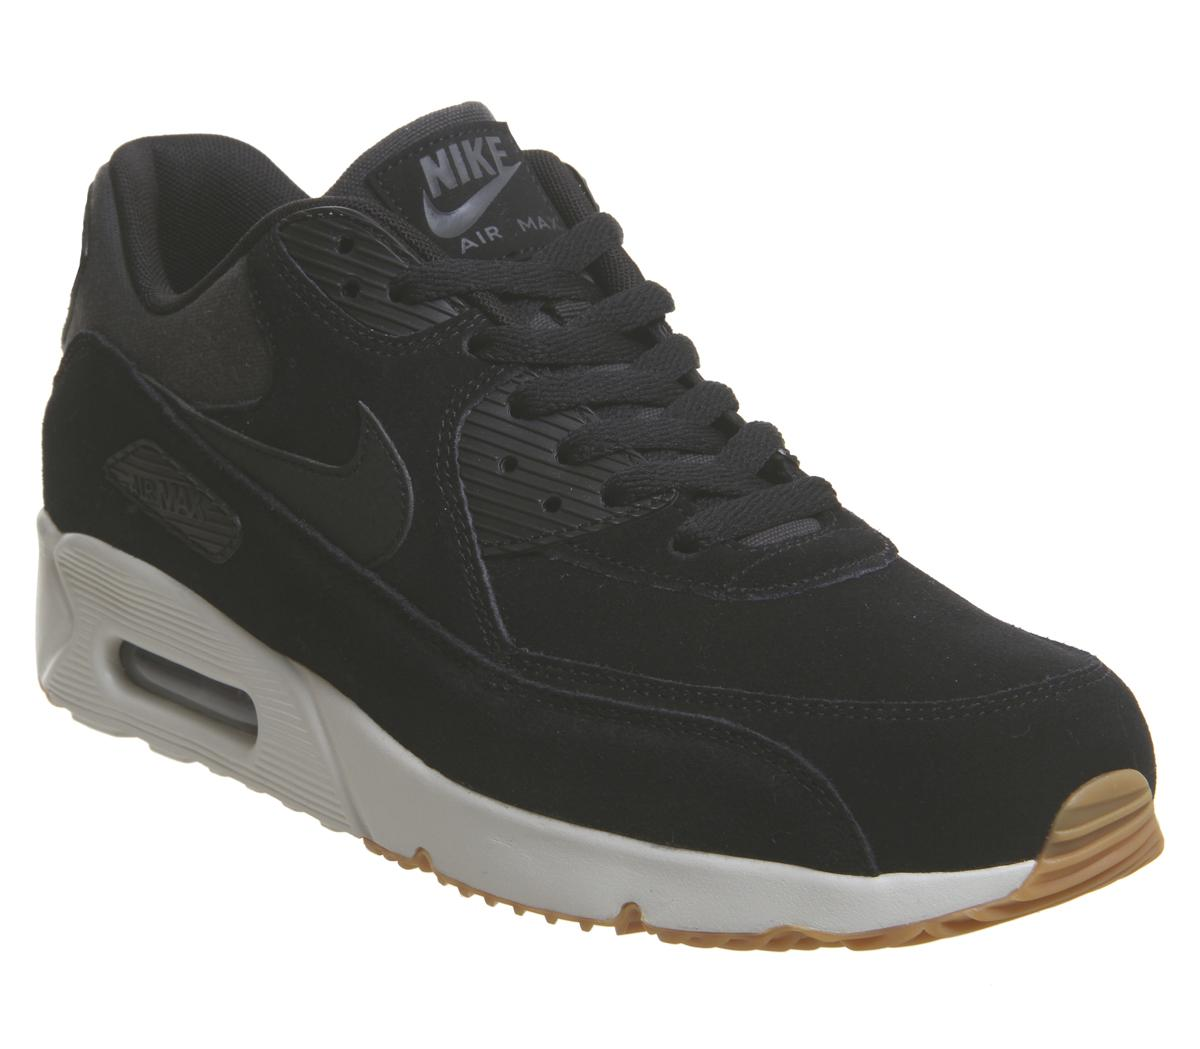 Nike Air Max 90 Ultra 2.0 Trainers